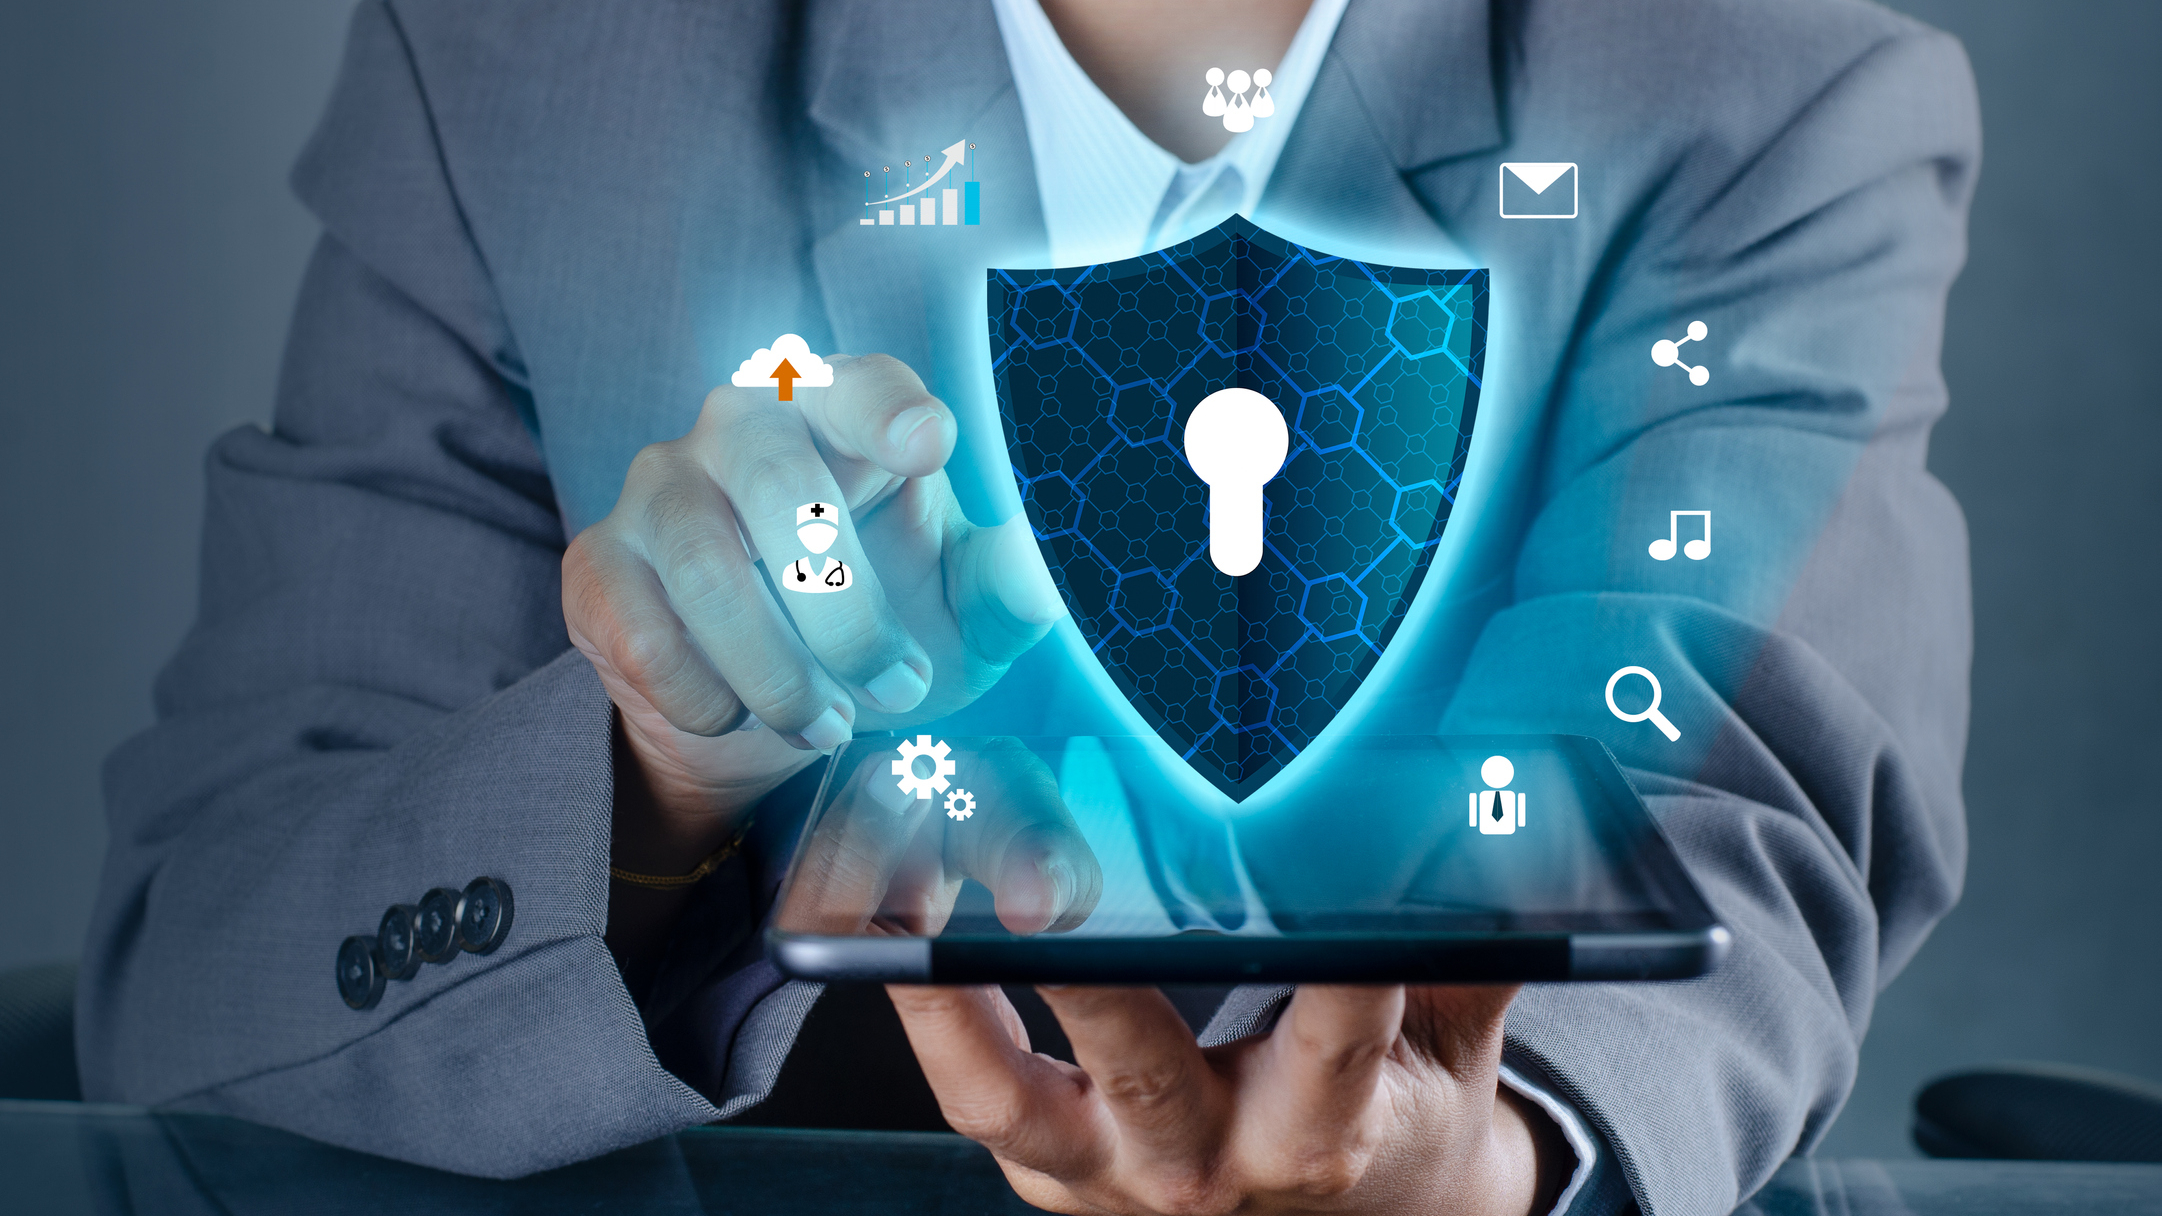 Best internet security software 2020: Protect your online devices